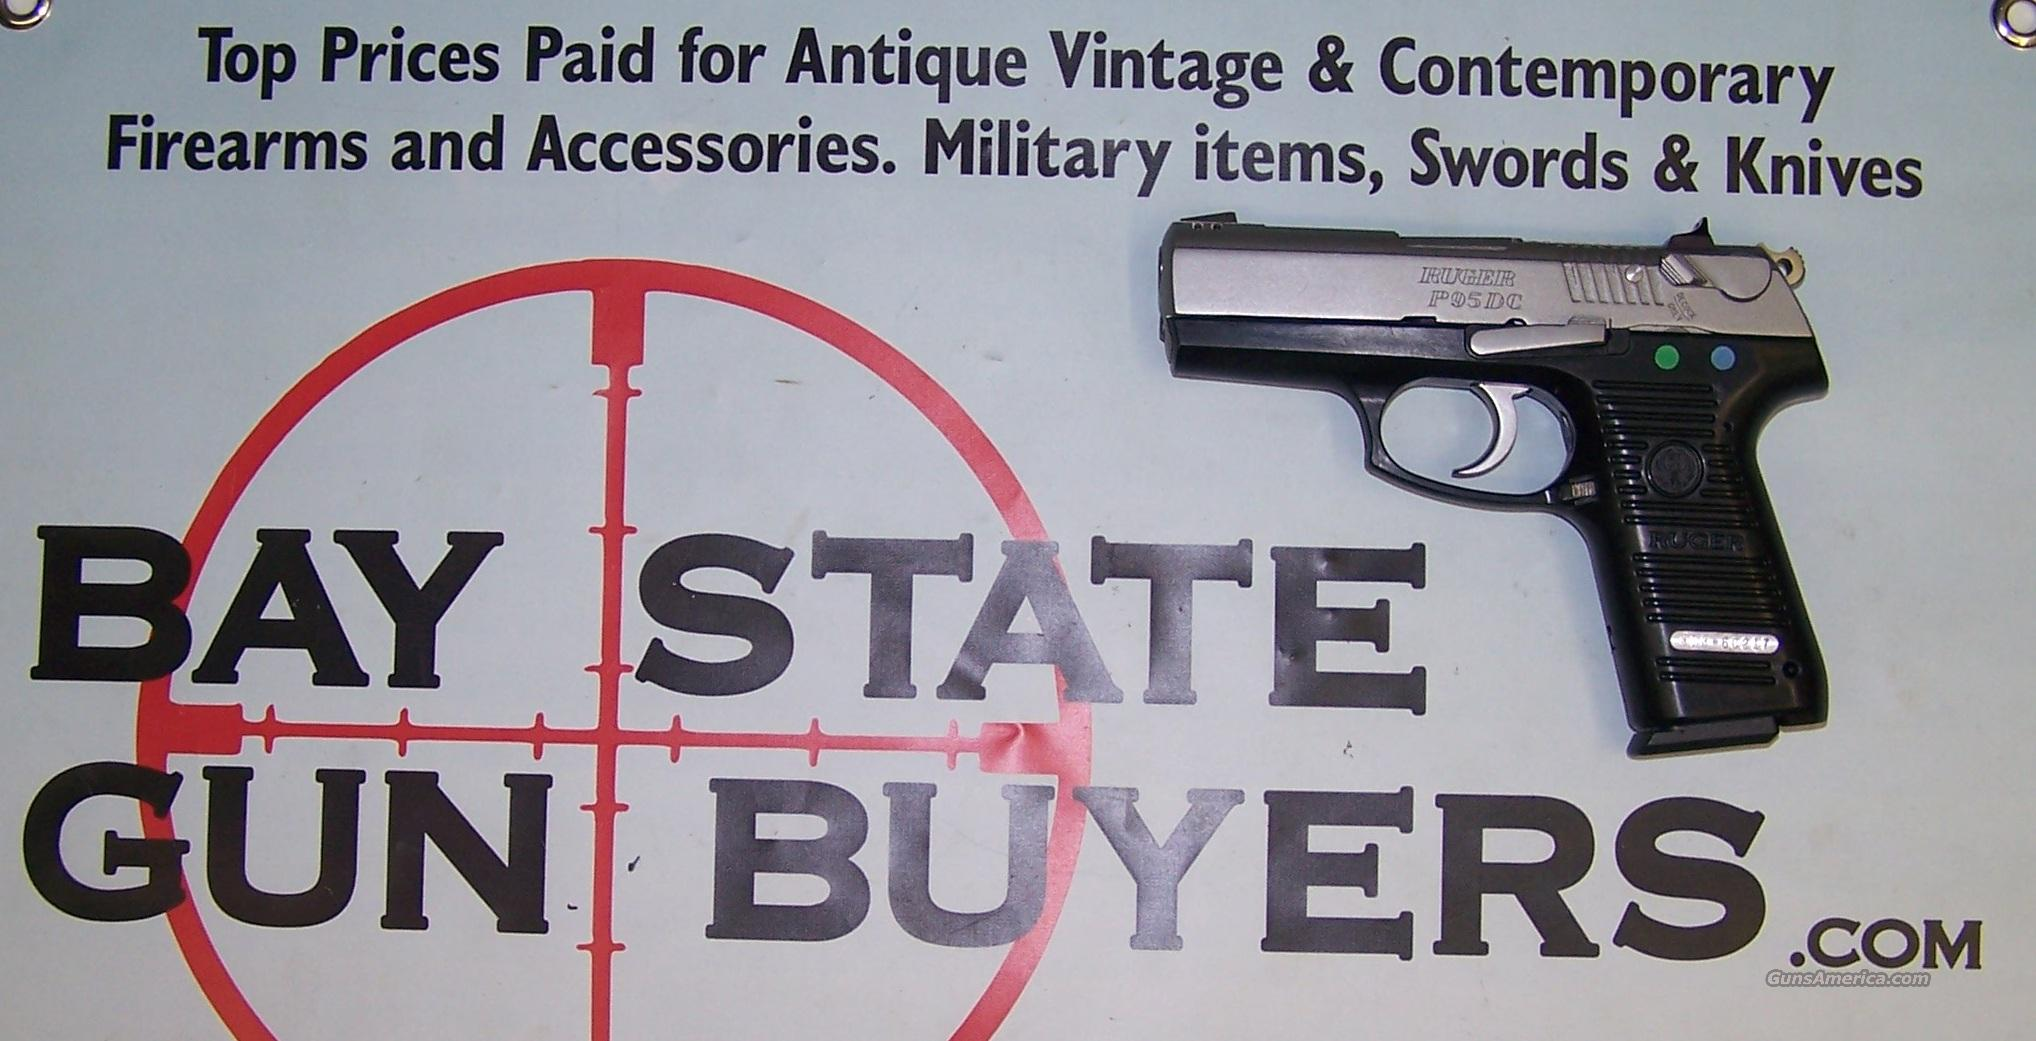 Ruger P95DC  9mm Pistol LIKE NEW IN BOX P 95 DC  Guns > Pistols > Ruger Semi-Auto Pistols > P-Series